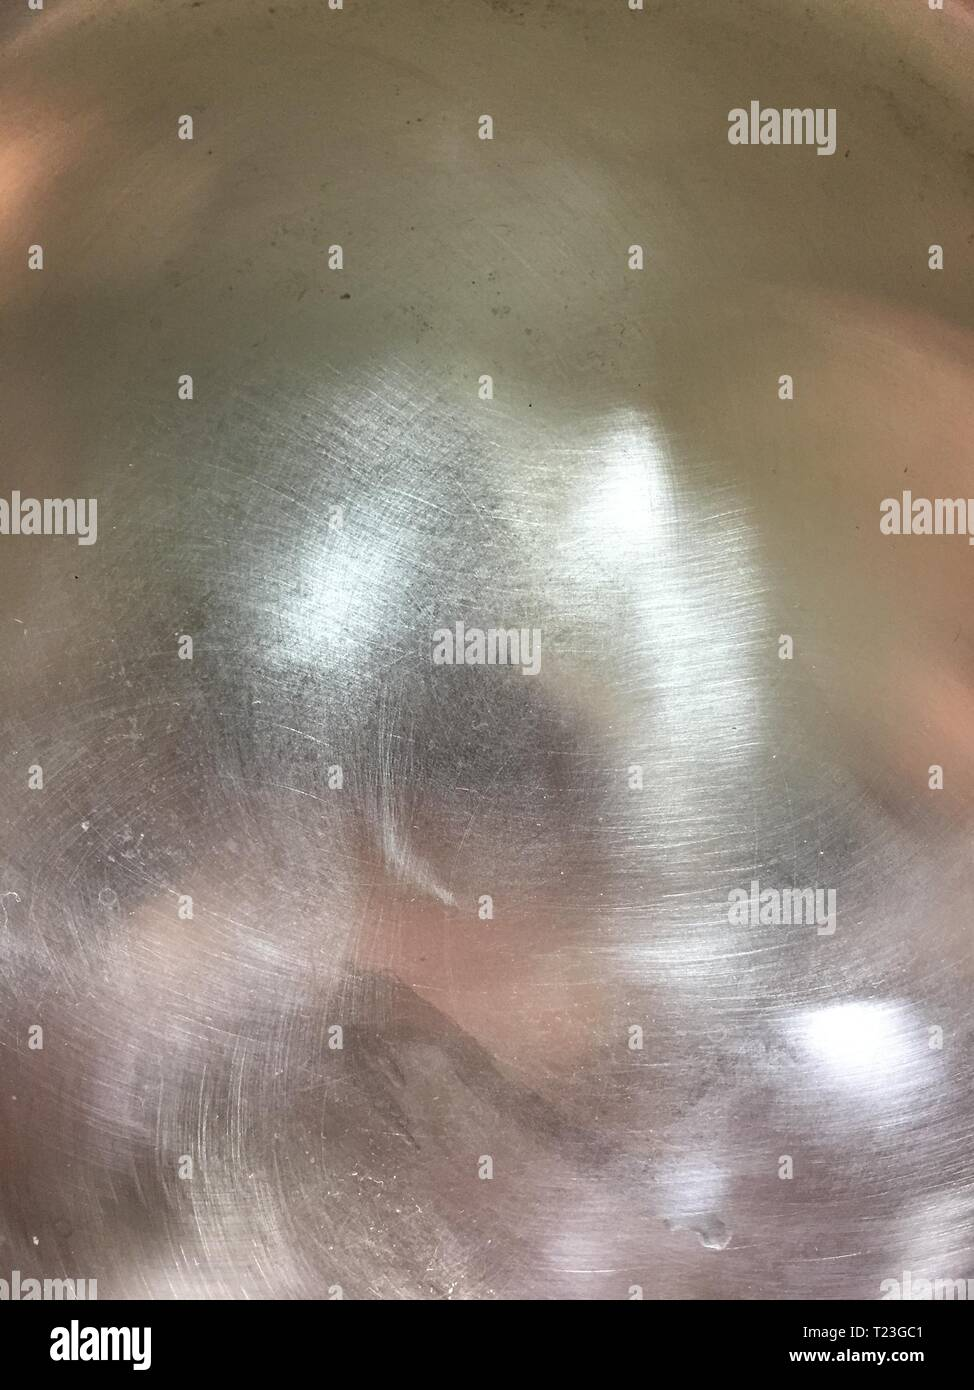 Stainless steel surface, bottom of a pot, clean, polished. - Stock Image